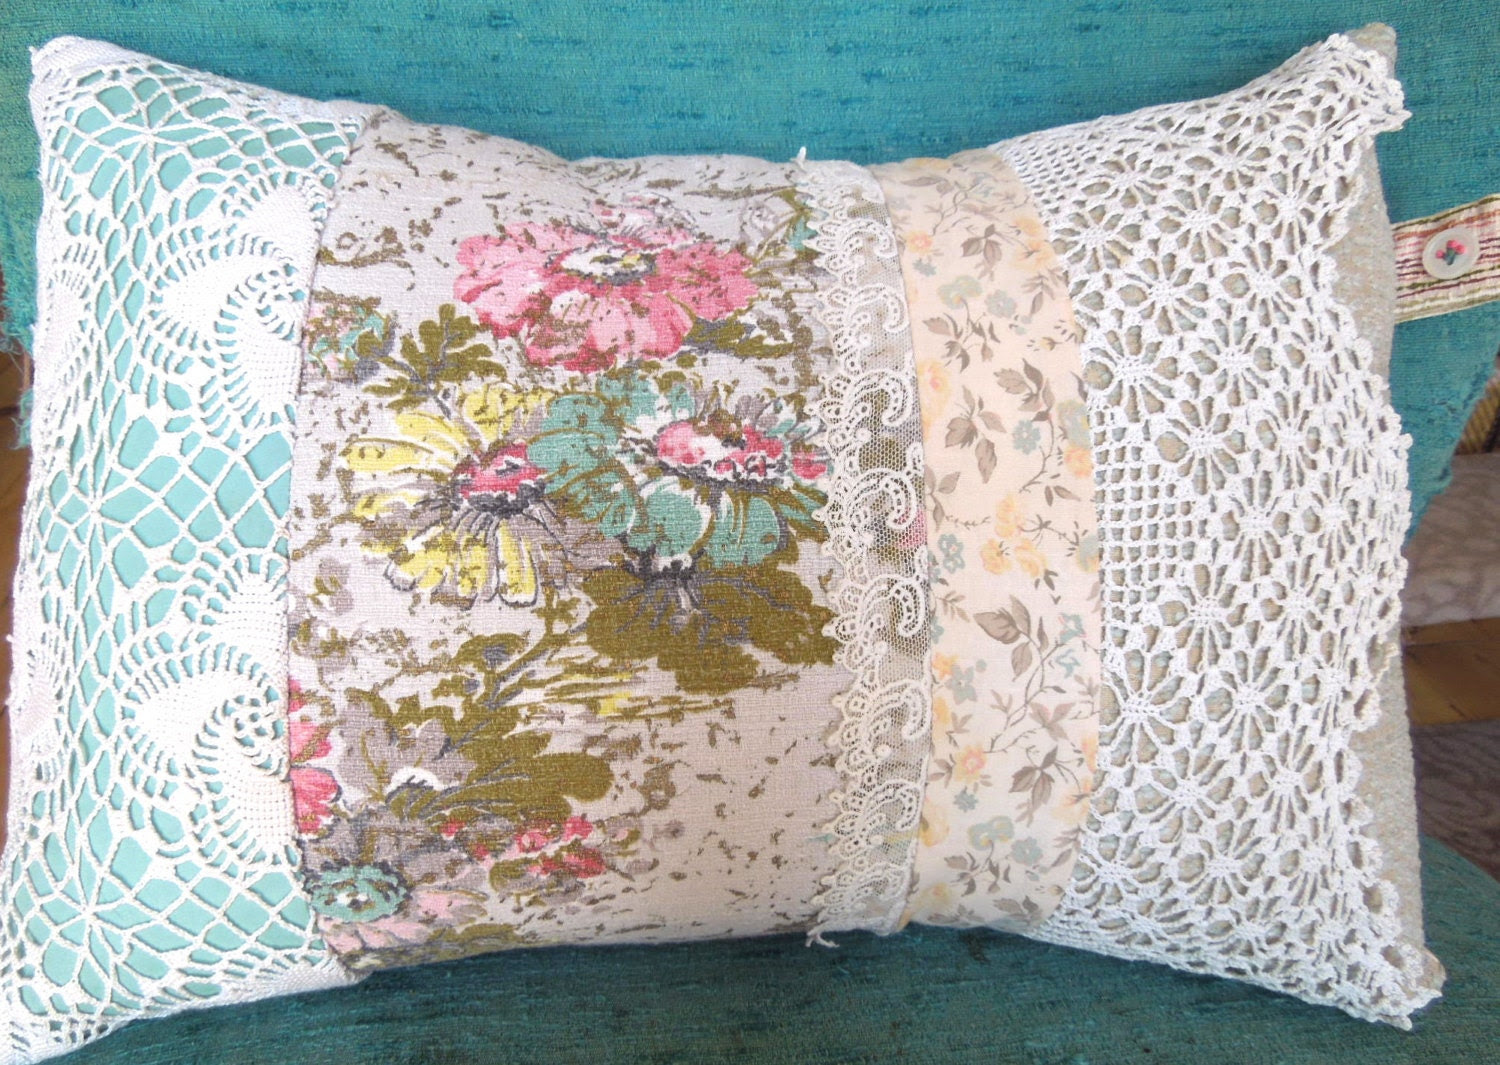 Sweet Vintage Lace & Barkcloth Patchwork Pillow Granny Chic Pale Pink Yellow Aqua Flower Fabric by Karyn Miracle - ShowandTellStudio